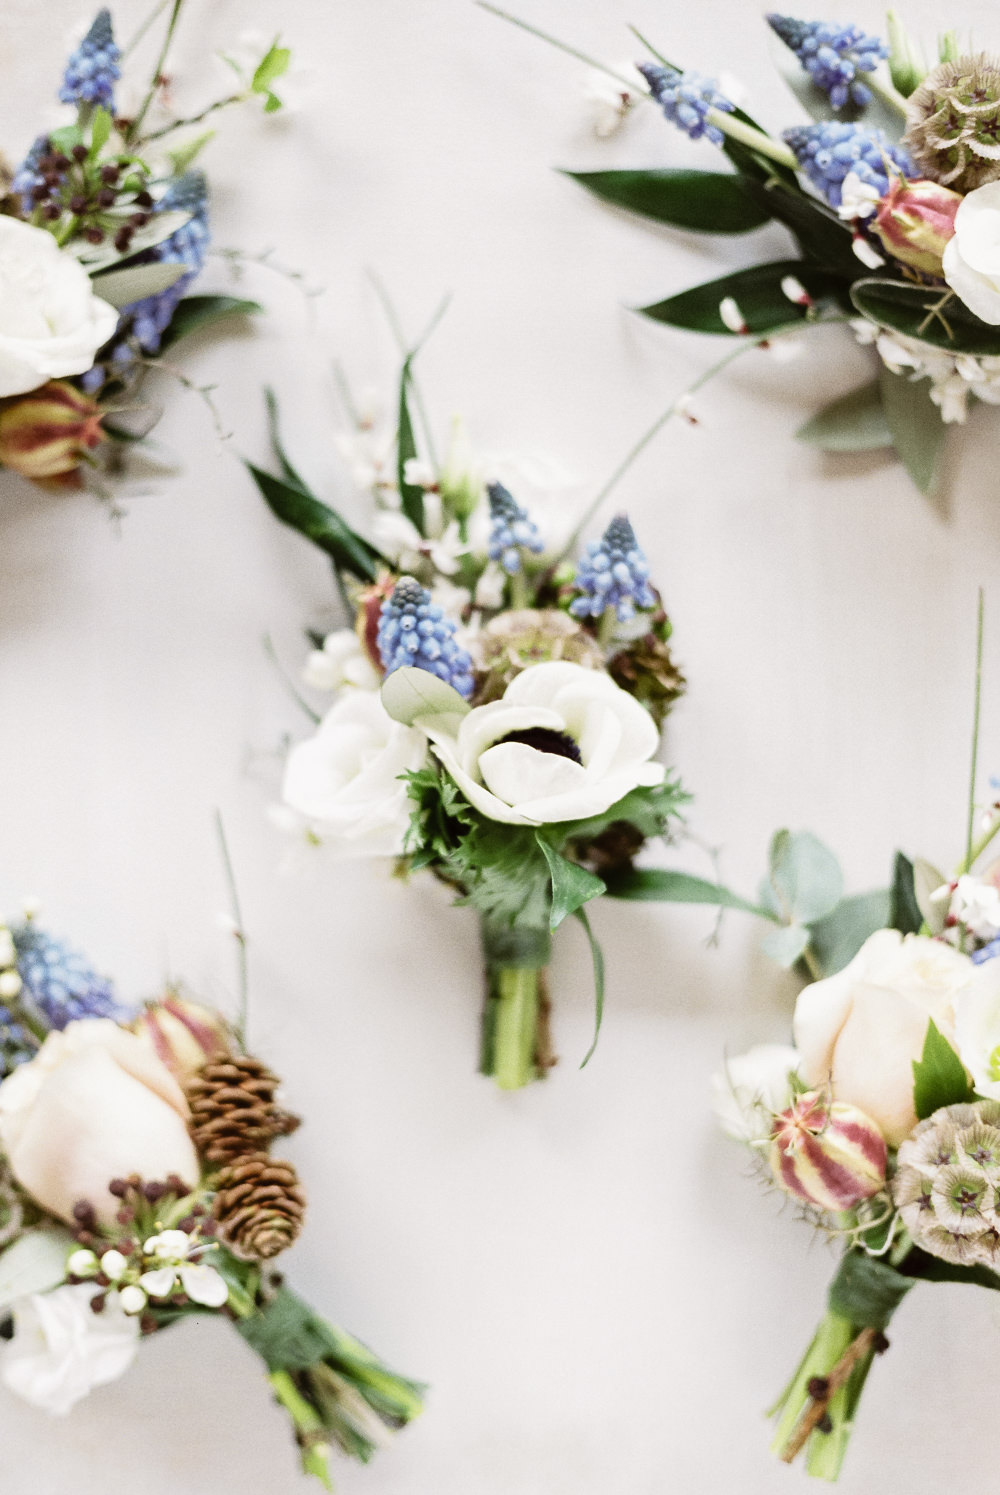 Buttonhole Flowers Grape Hyacinth Anemone Pine Cones Winter Blue Barn Wedding Ideas Joanna Briggs Photography